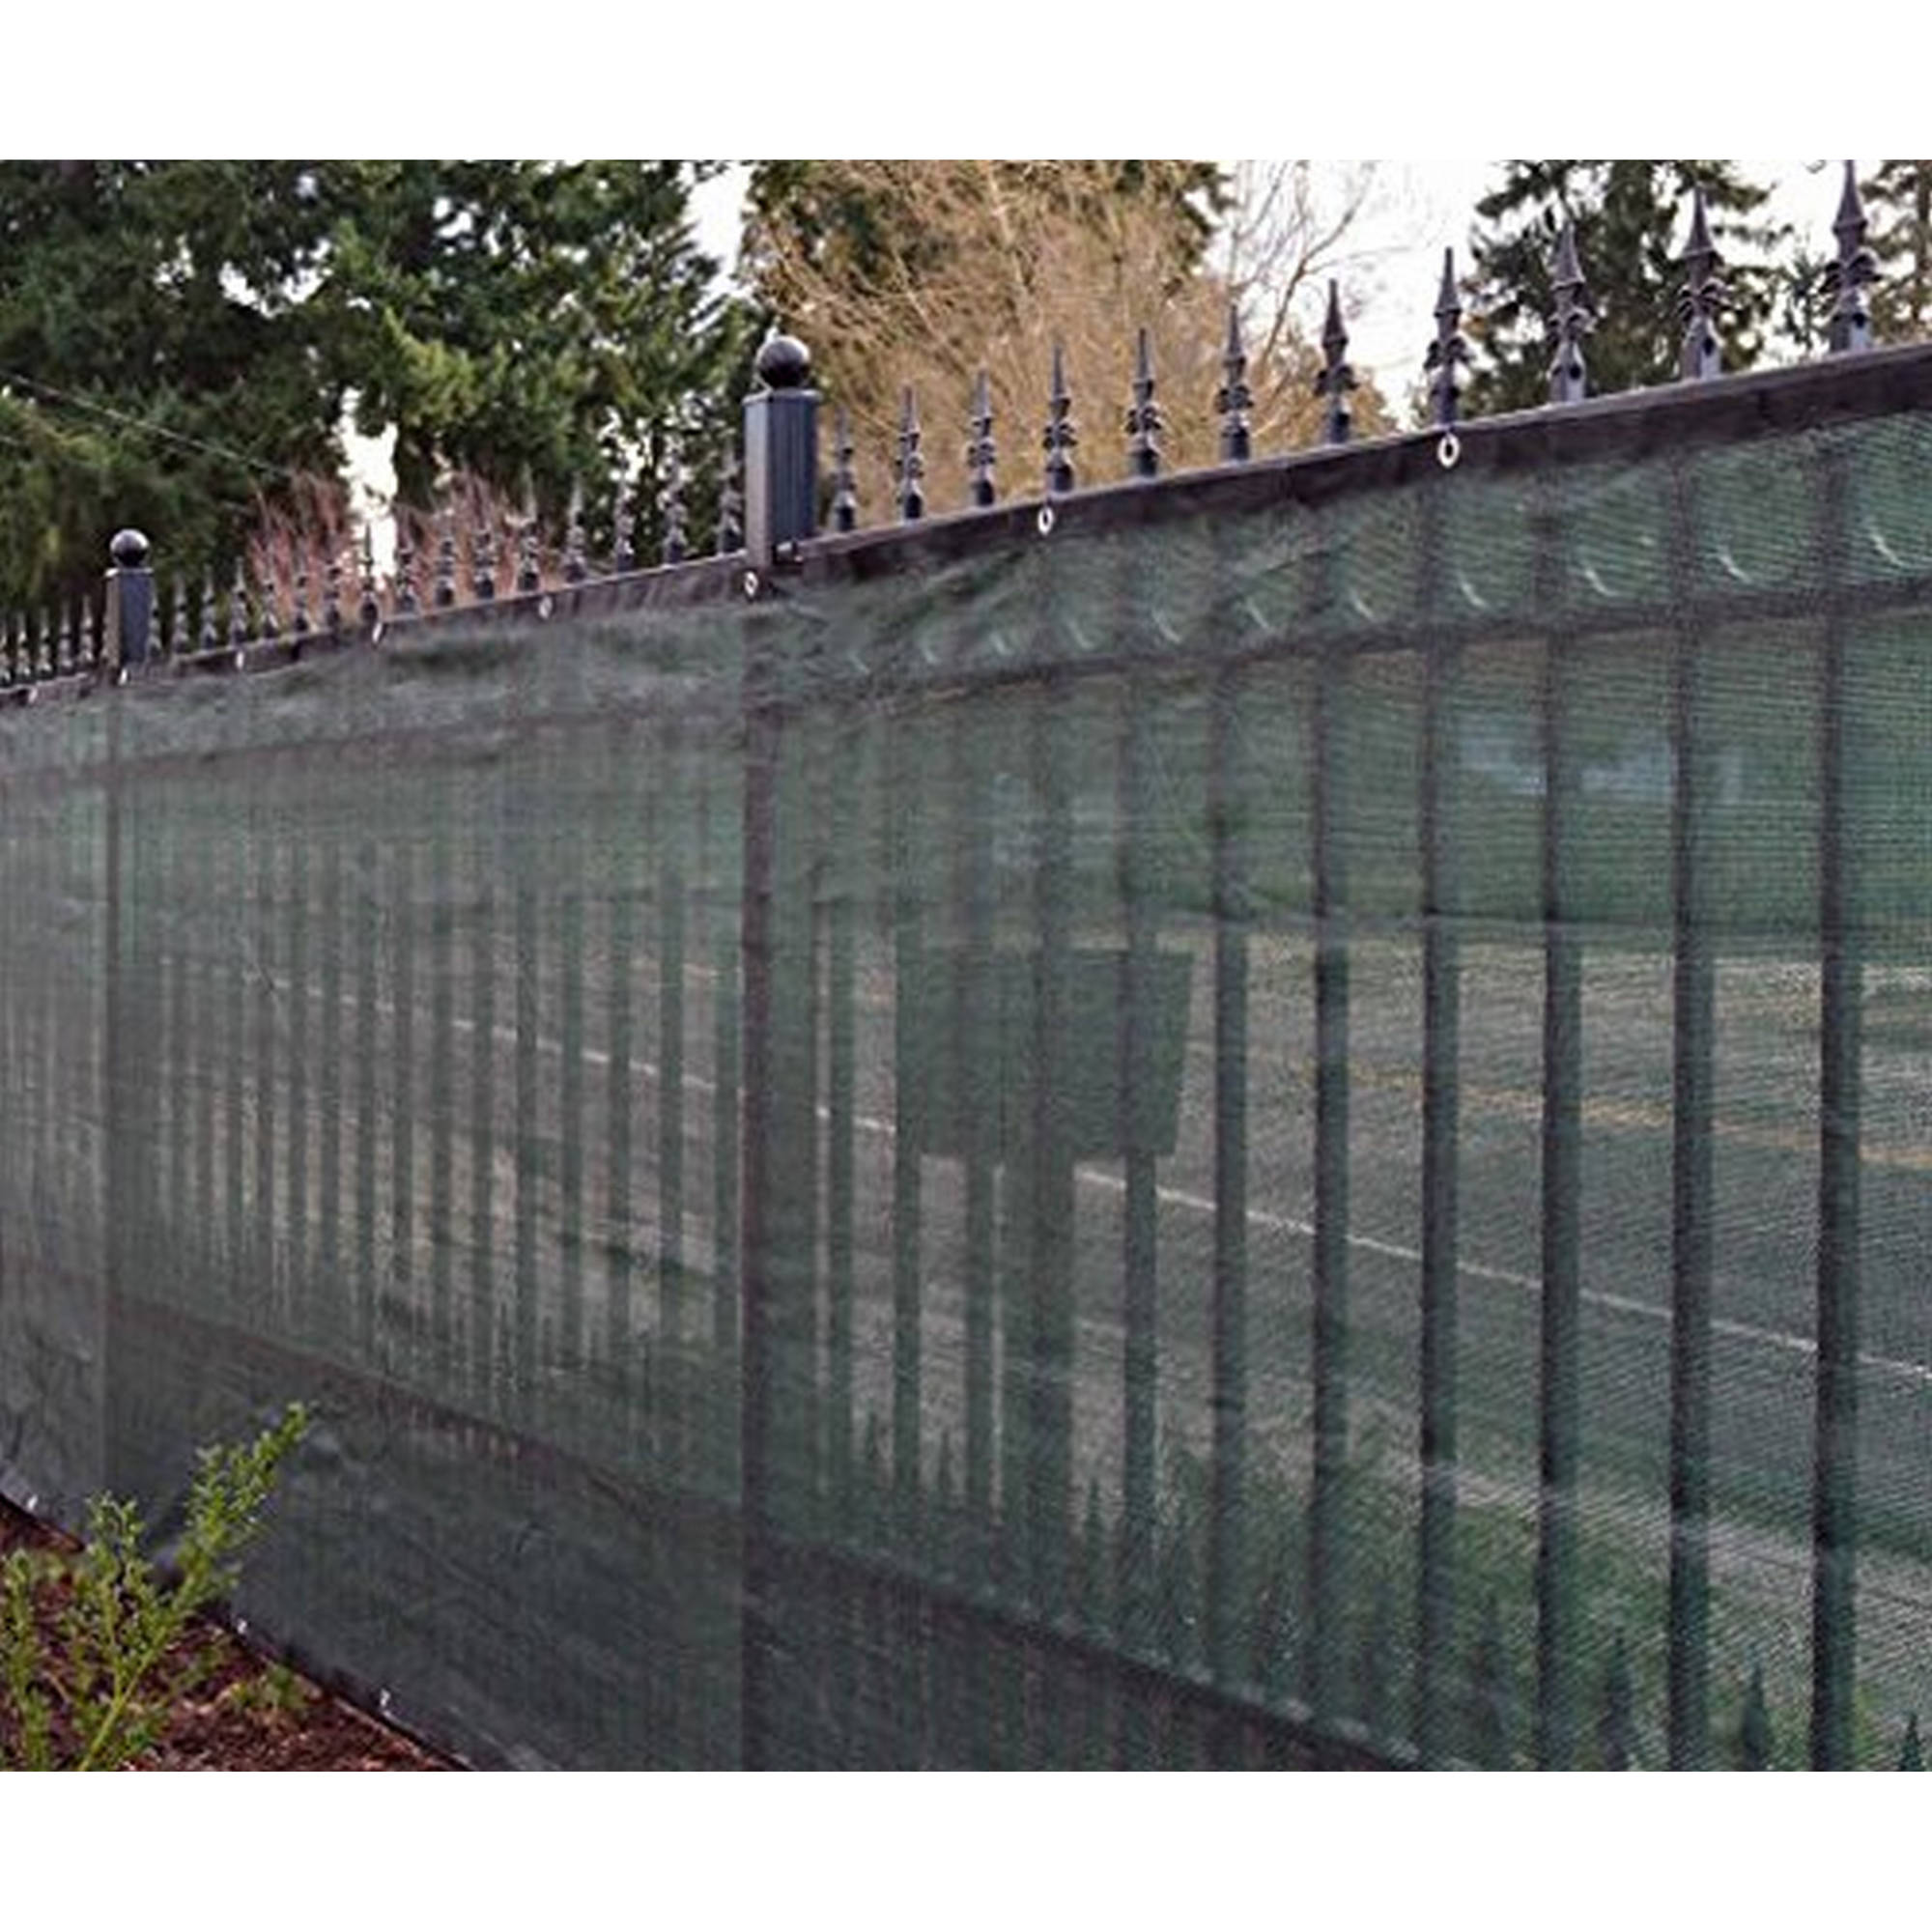 Aleko 5' x 50' Dark Green Fence Privacy Screen Windscreen Shade Cover Mesh Fabric by ALEKO